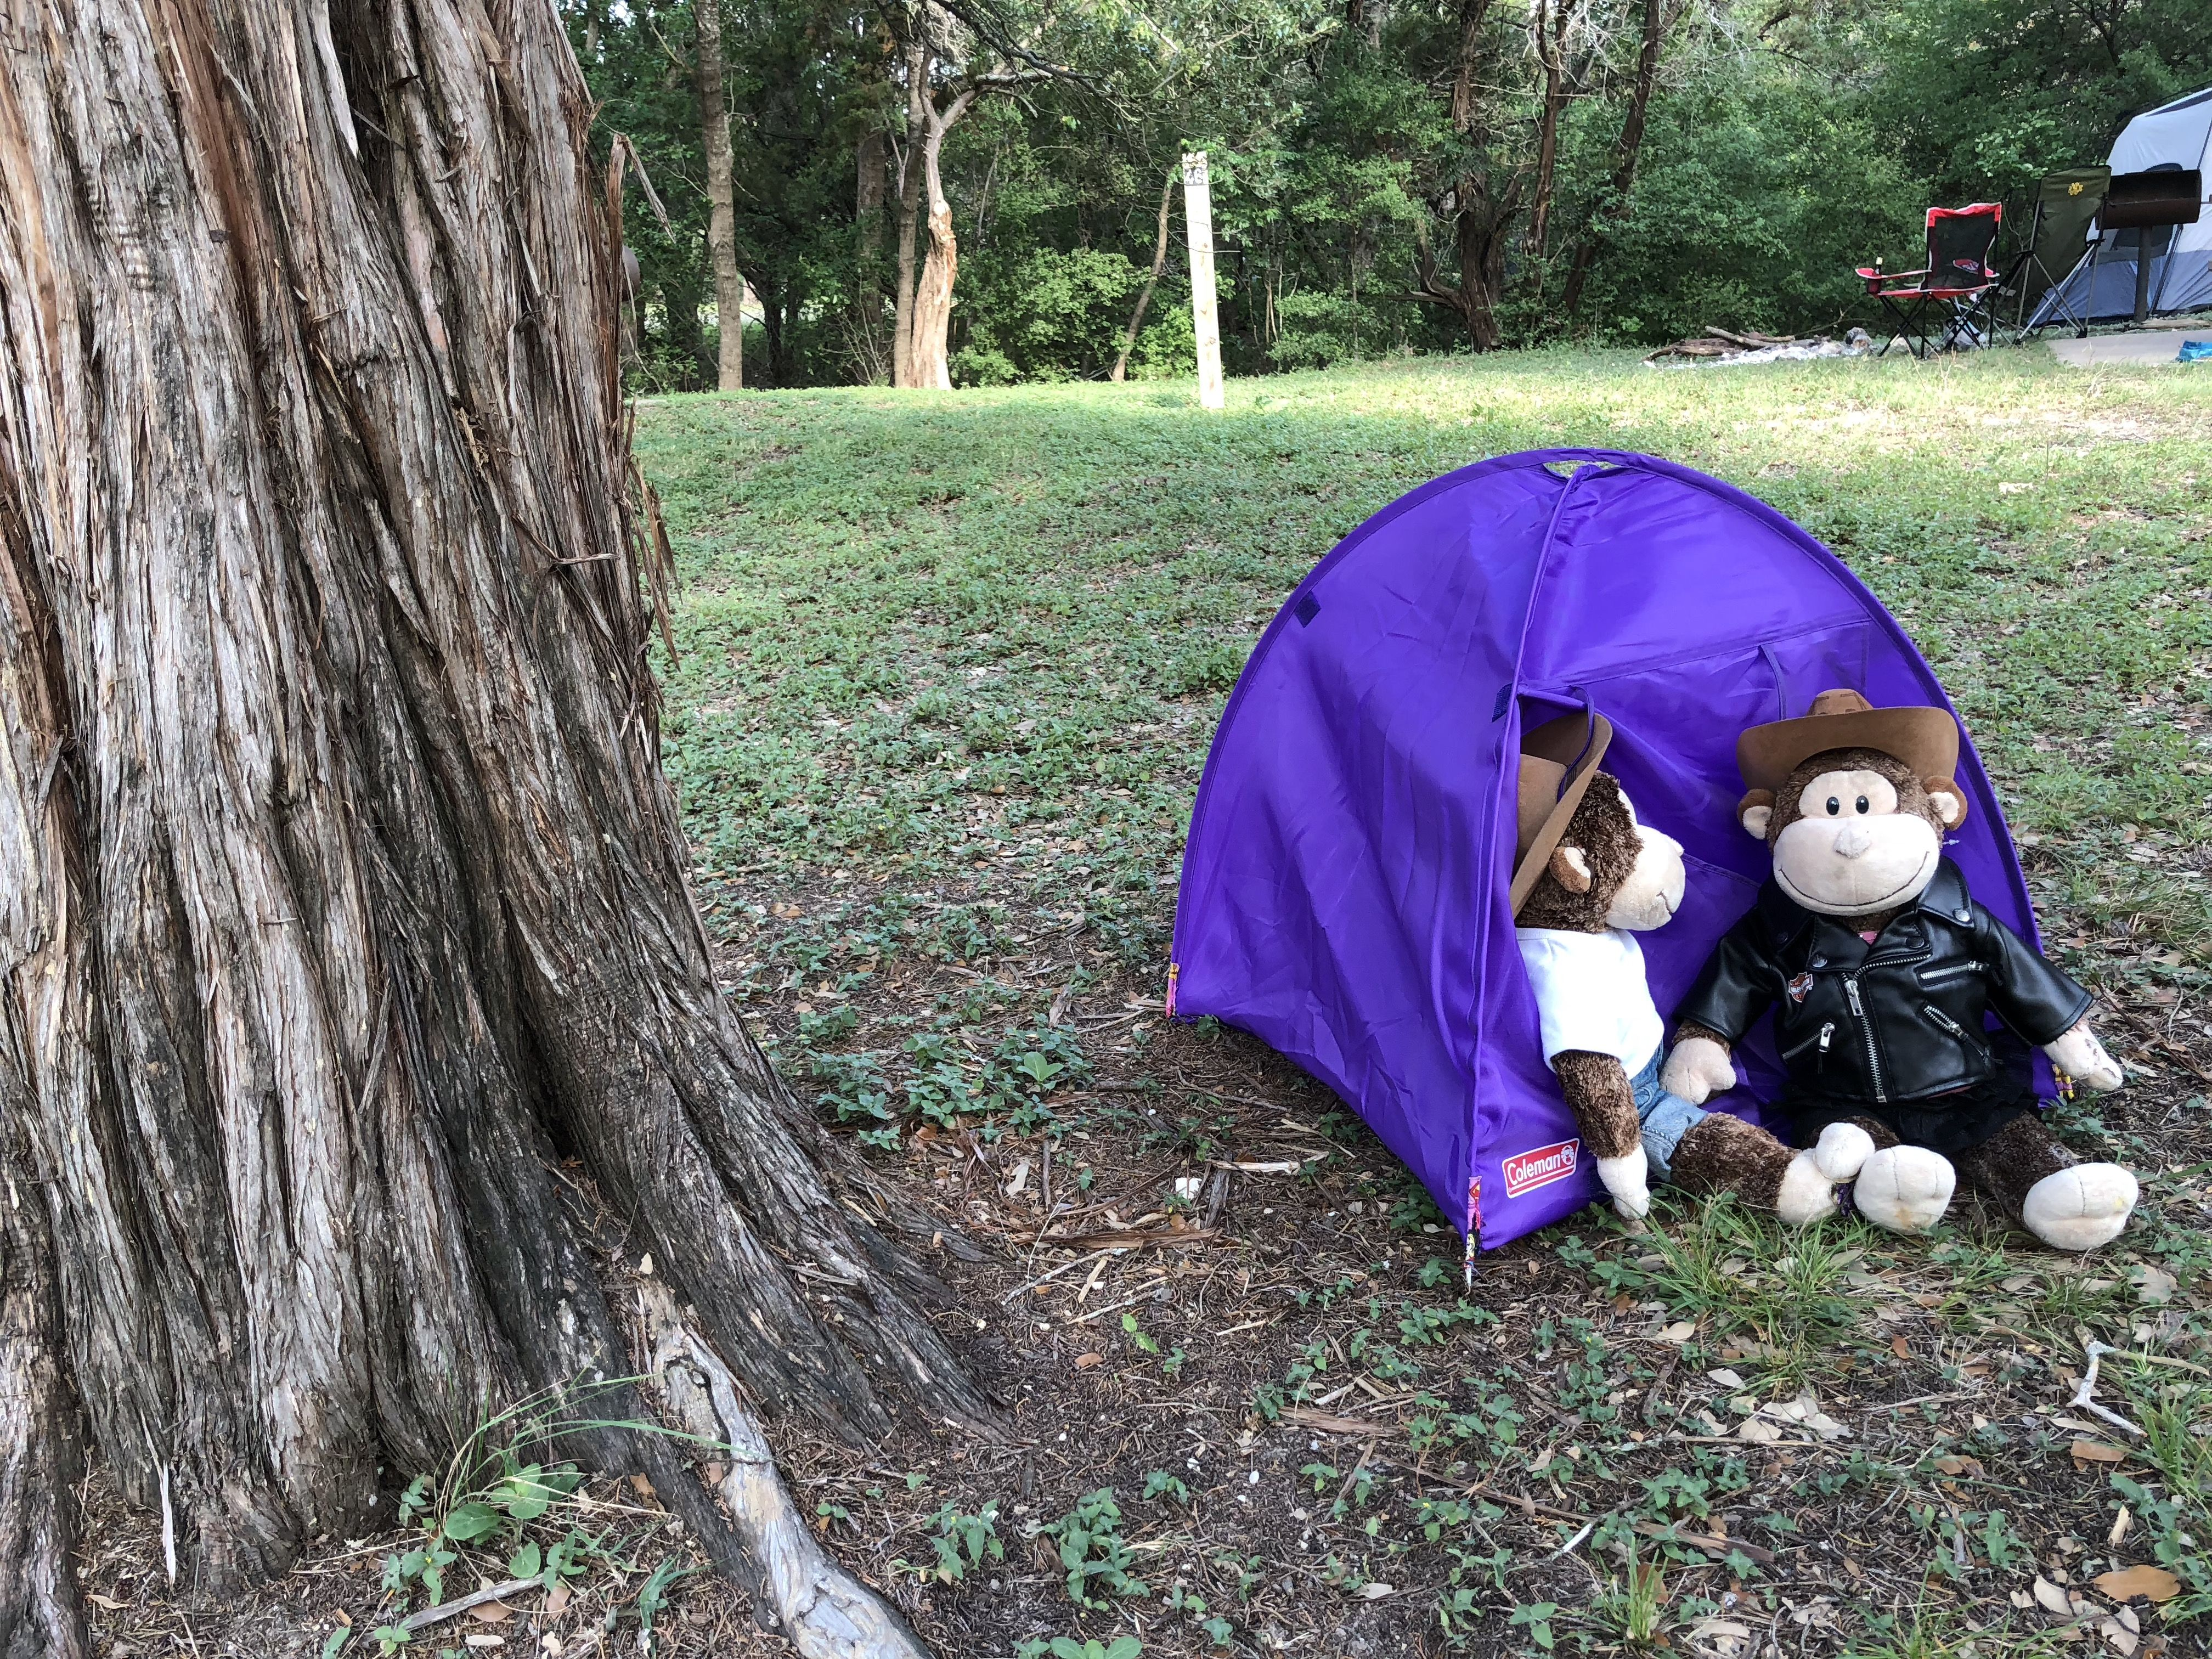 Reynolds Creek Campground Waco Tx Situated Along The Shores Of Lake Waco Nicely Shaded Baby Car Seats Outdoor Gear Lake